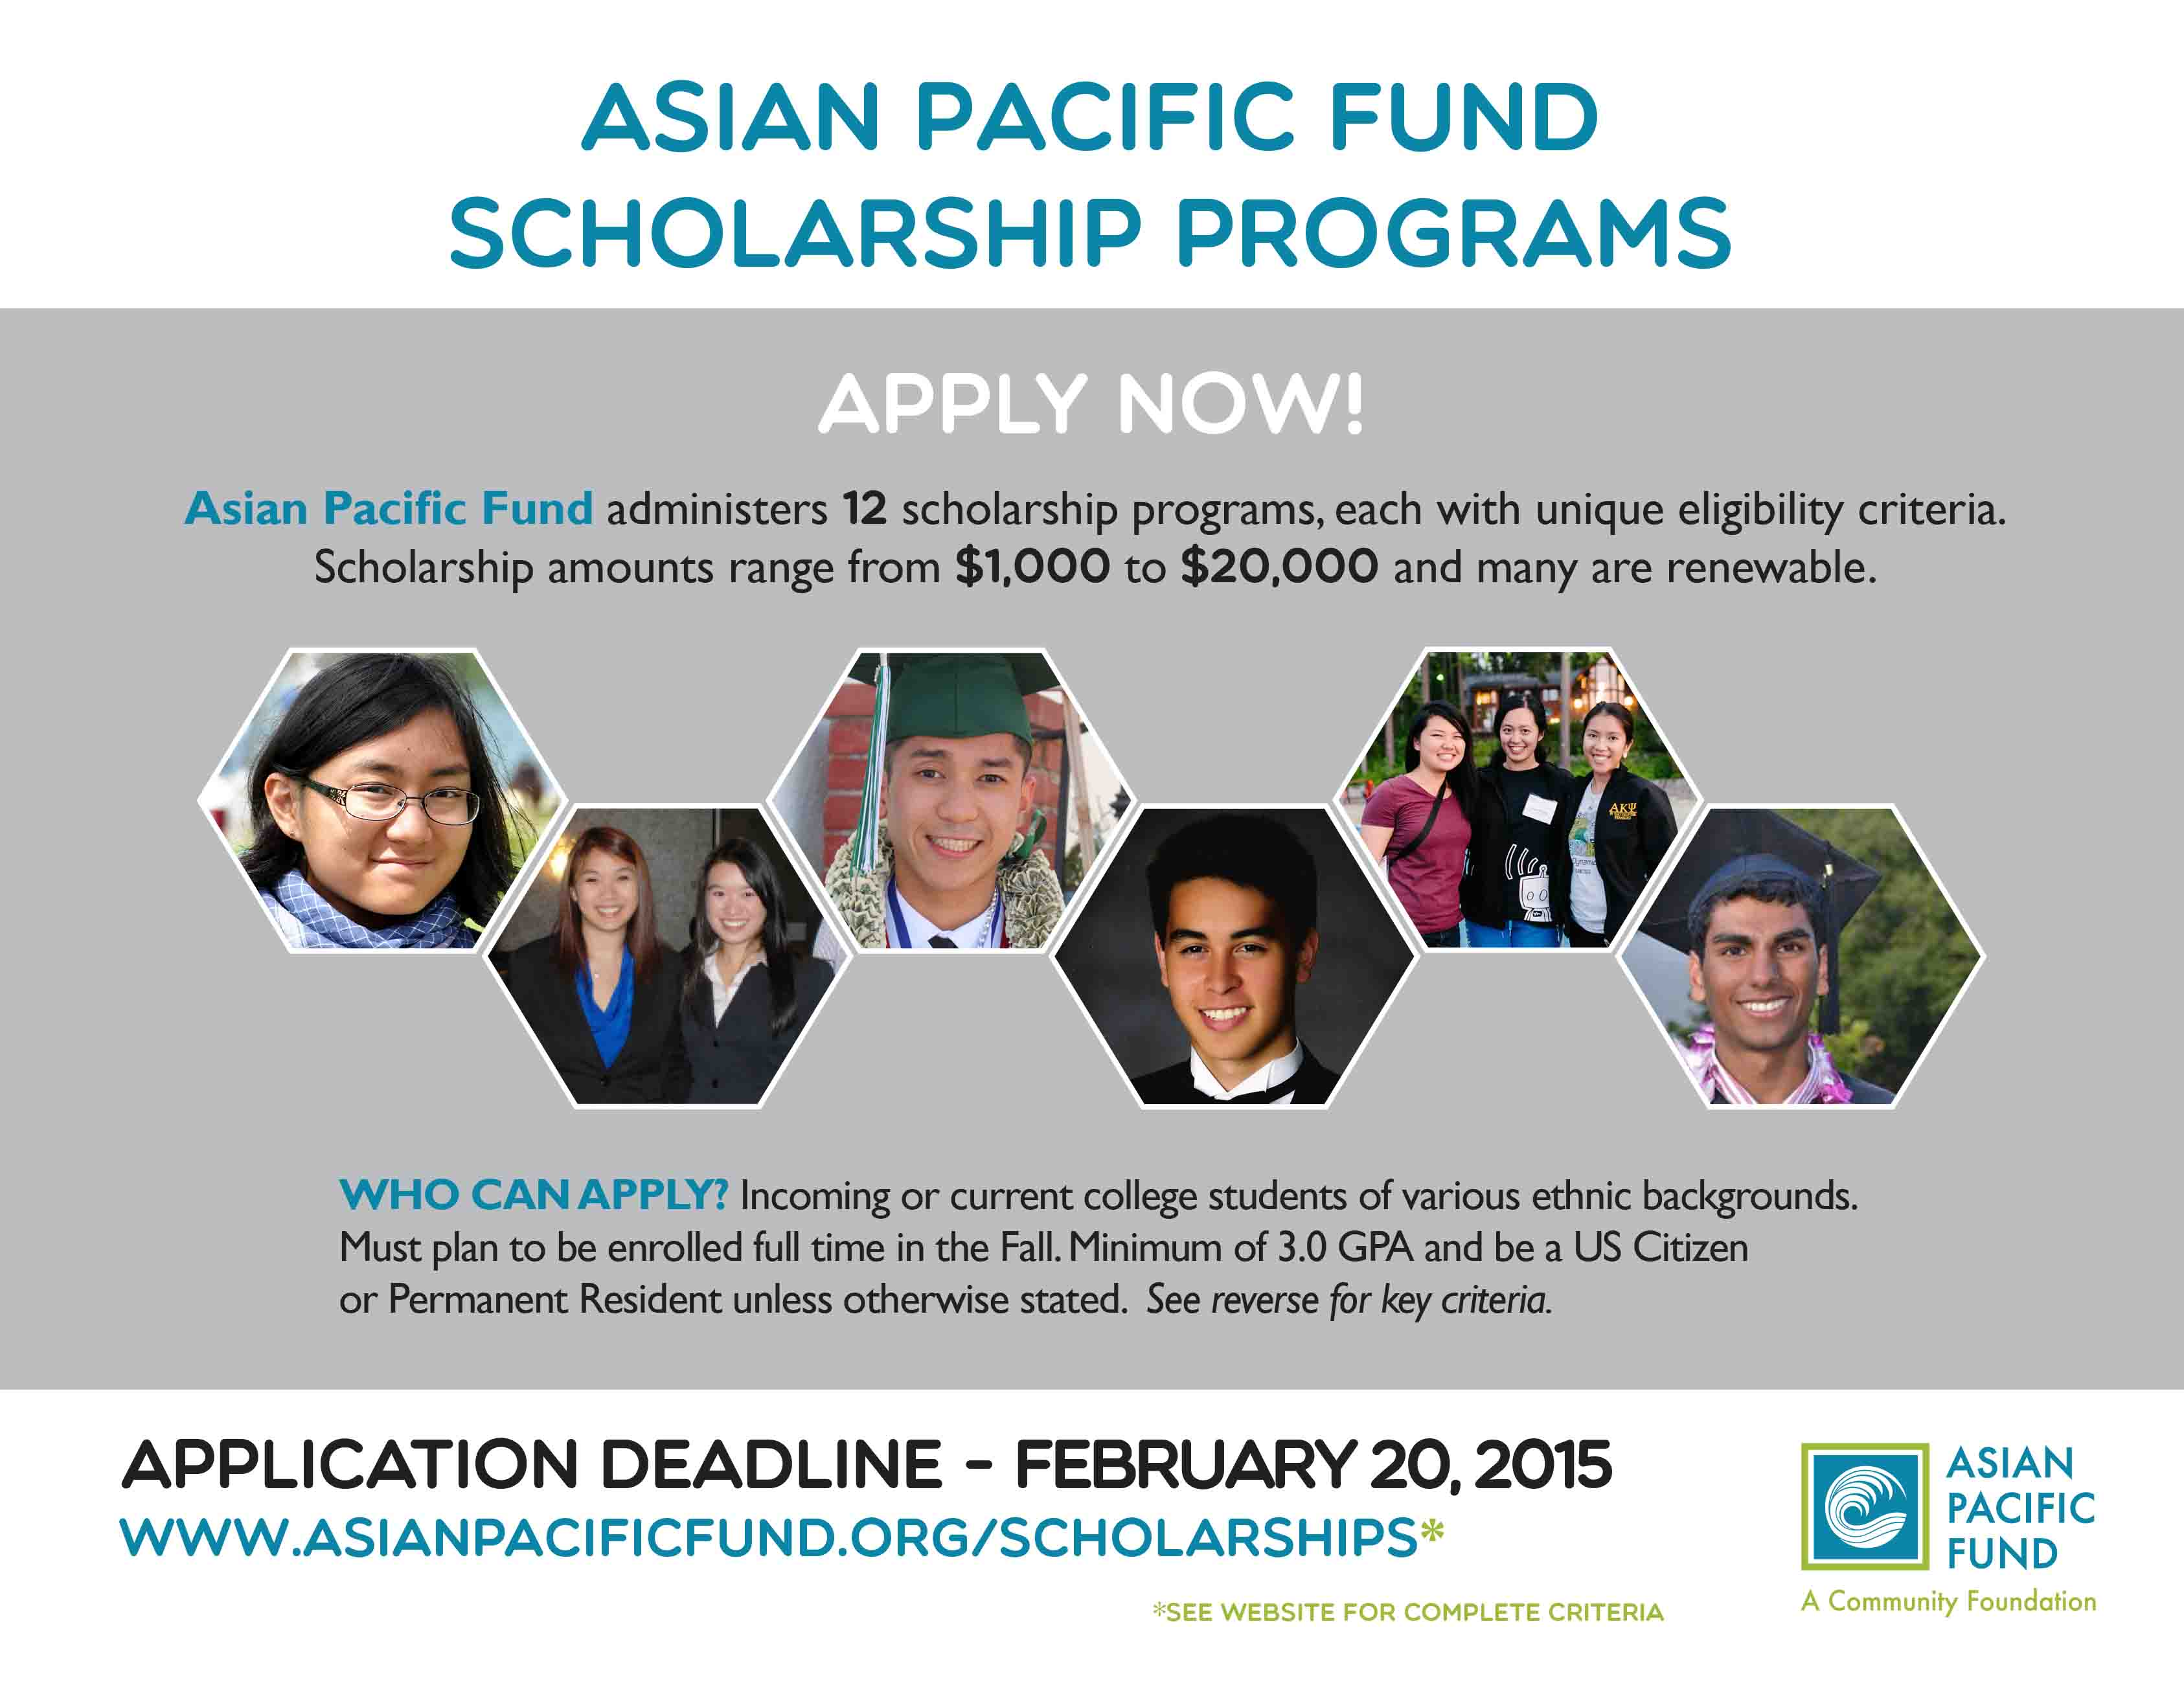 Impudence! Asian scholar fund You